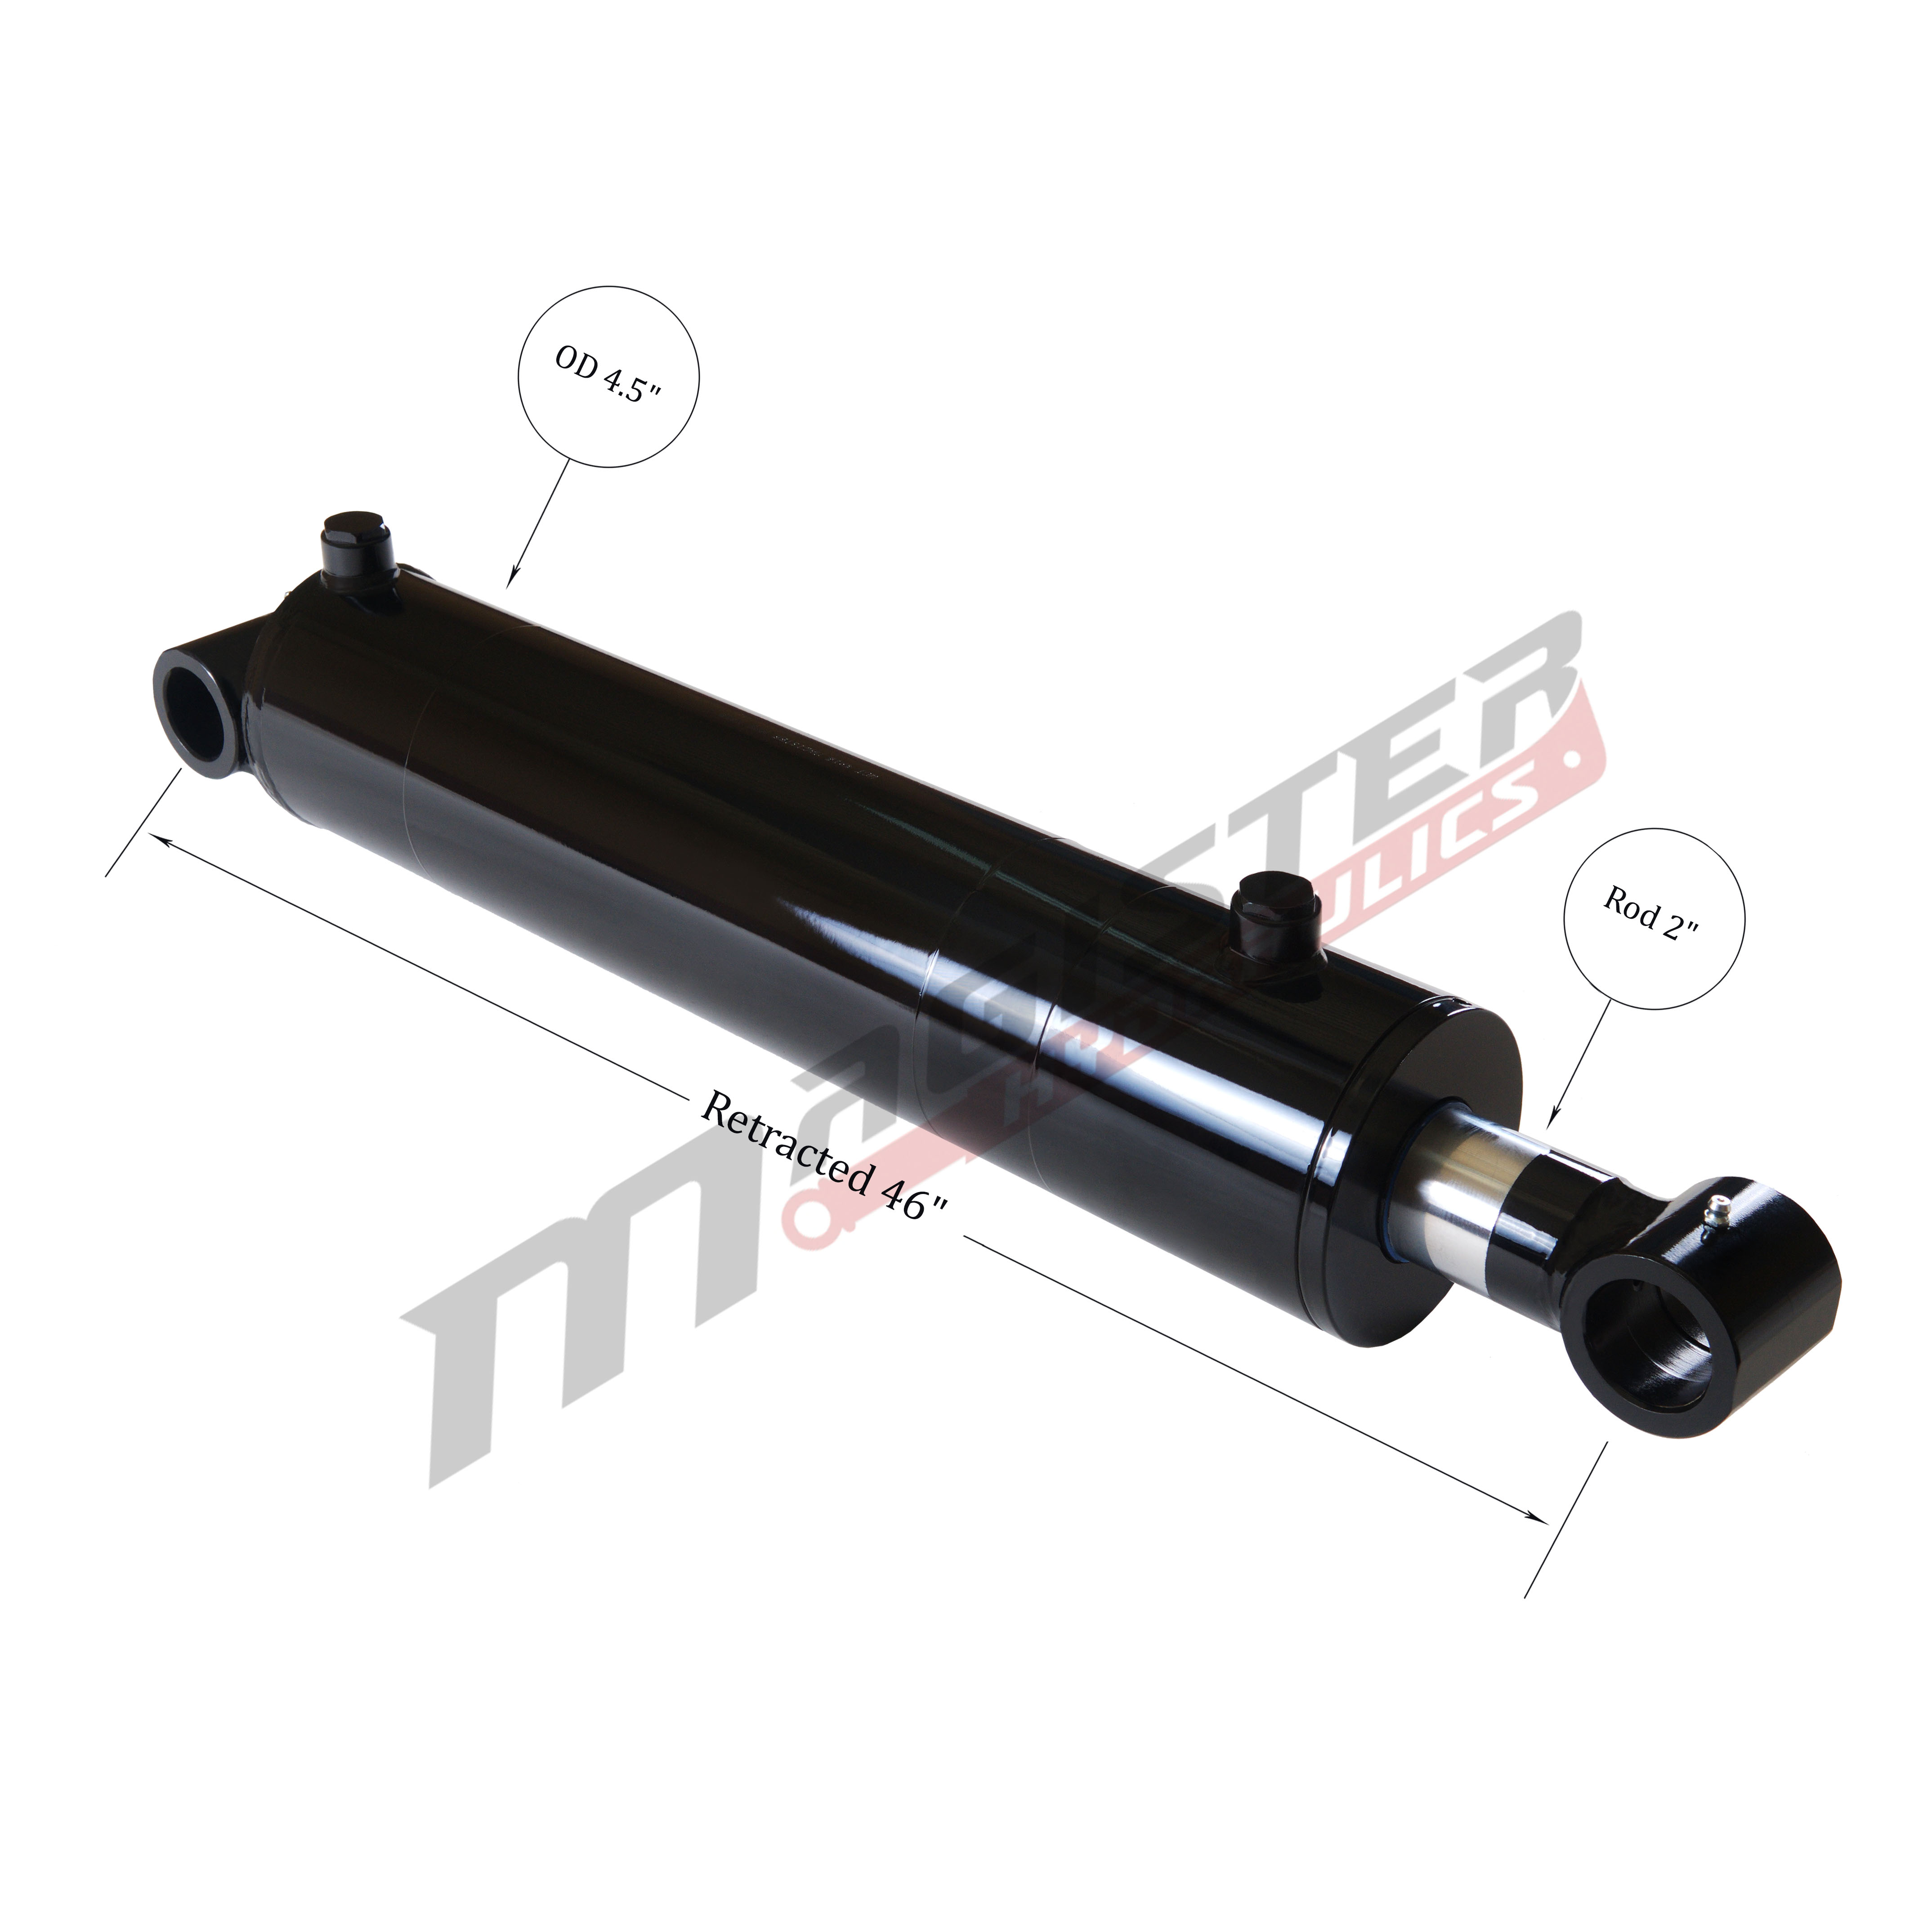 4 bore x 36 stroke hydraulic cylinder, welded cross tube double acting cylinder | Magister Hydraulics